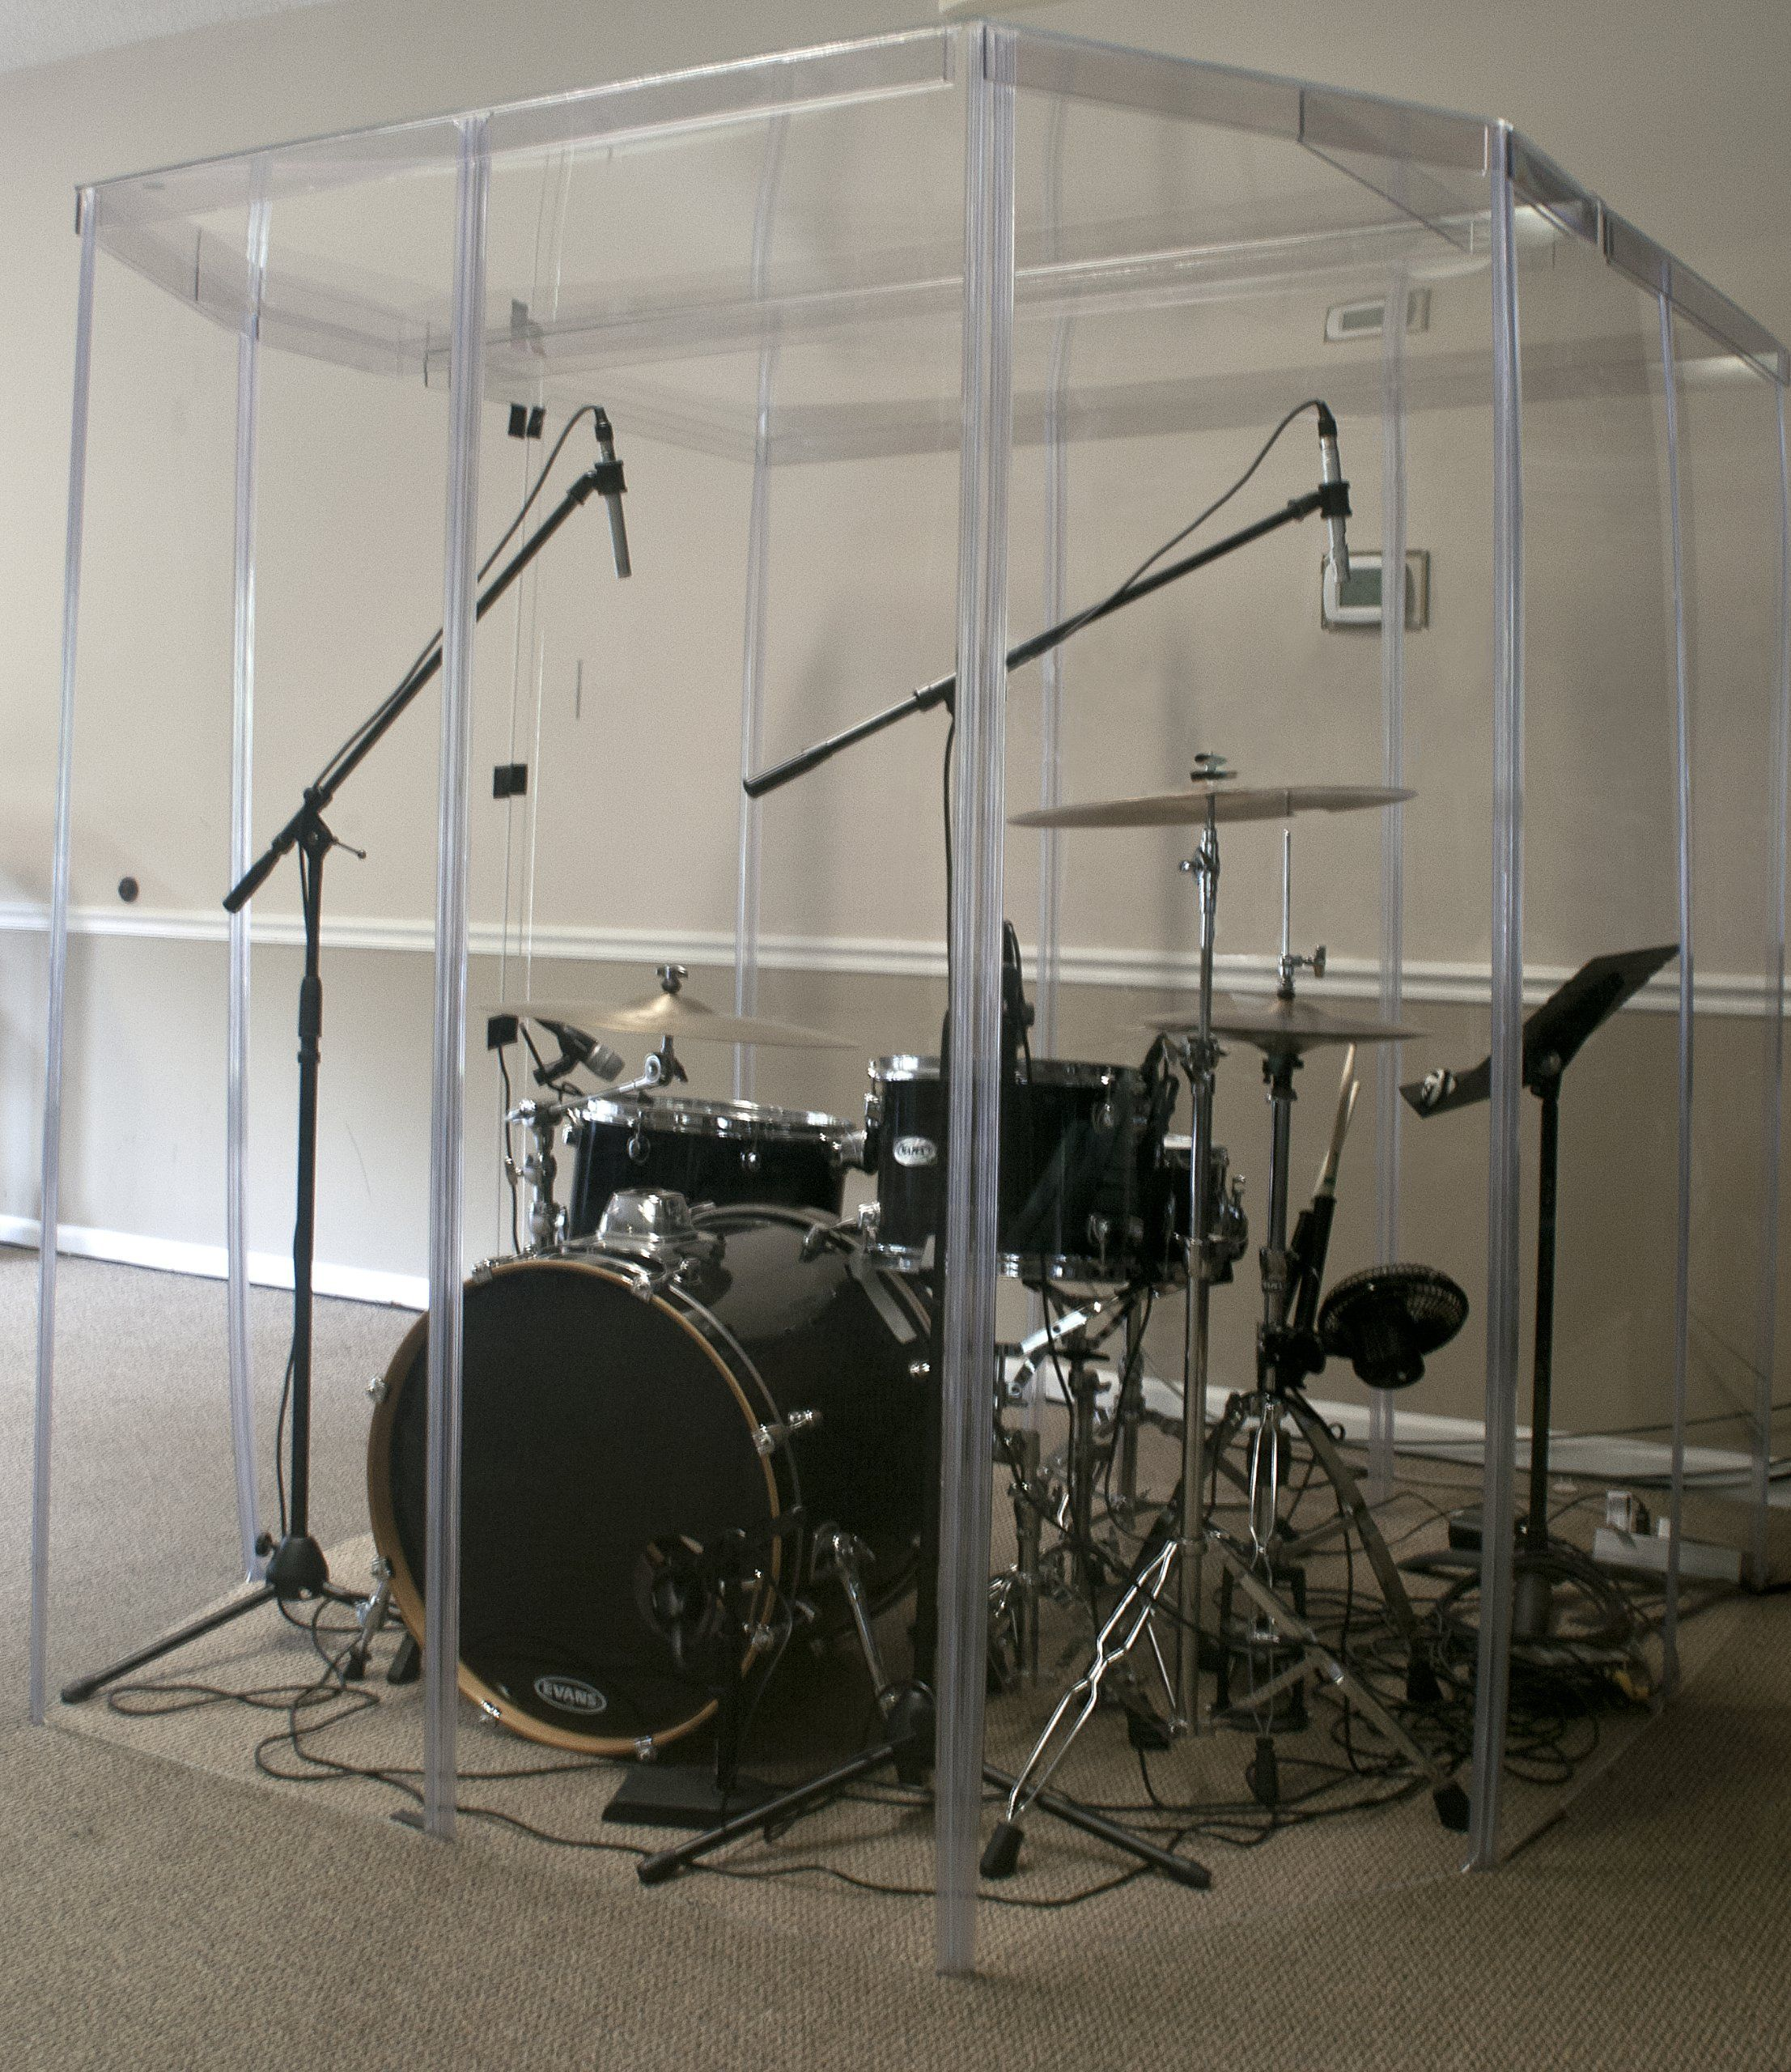 Drum booth sound room drum shields or drum shield for Soundproofing a room for music